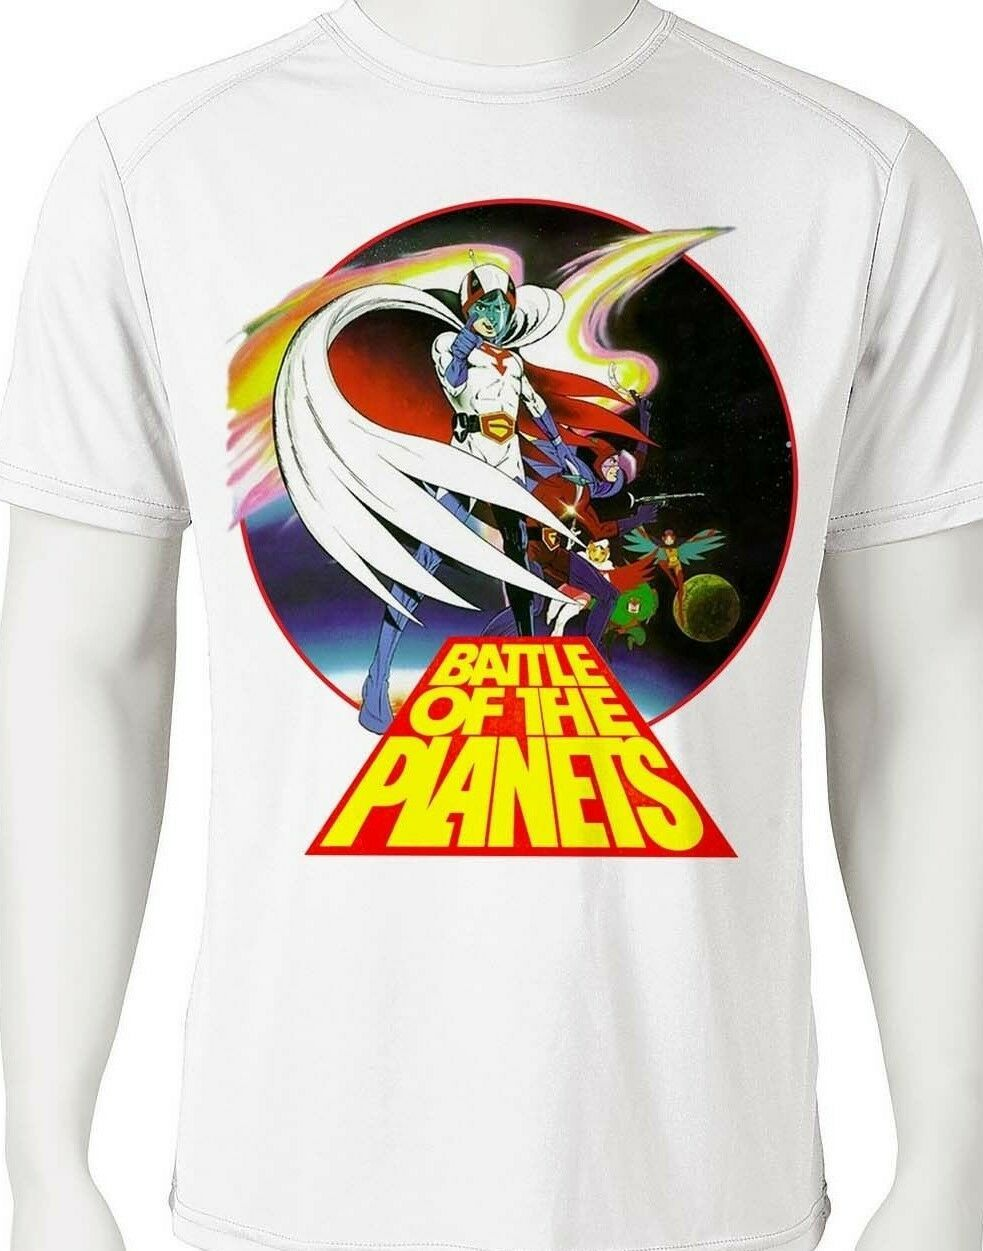 Battle planets dri fit graphic tshirt moisture wicking superhero anime spf tee